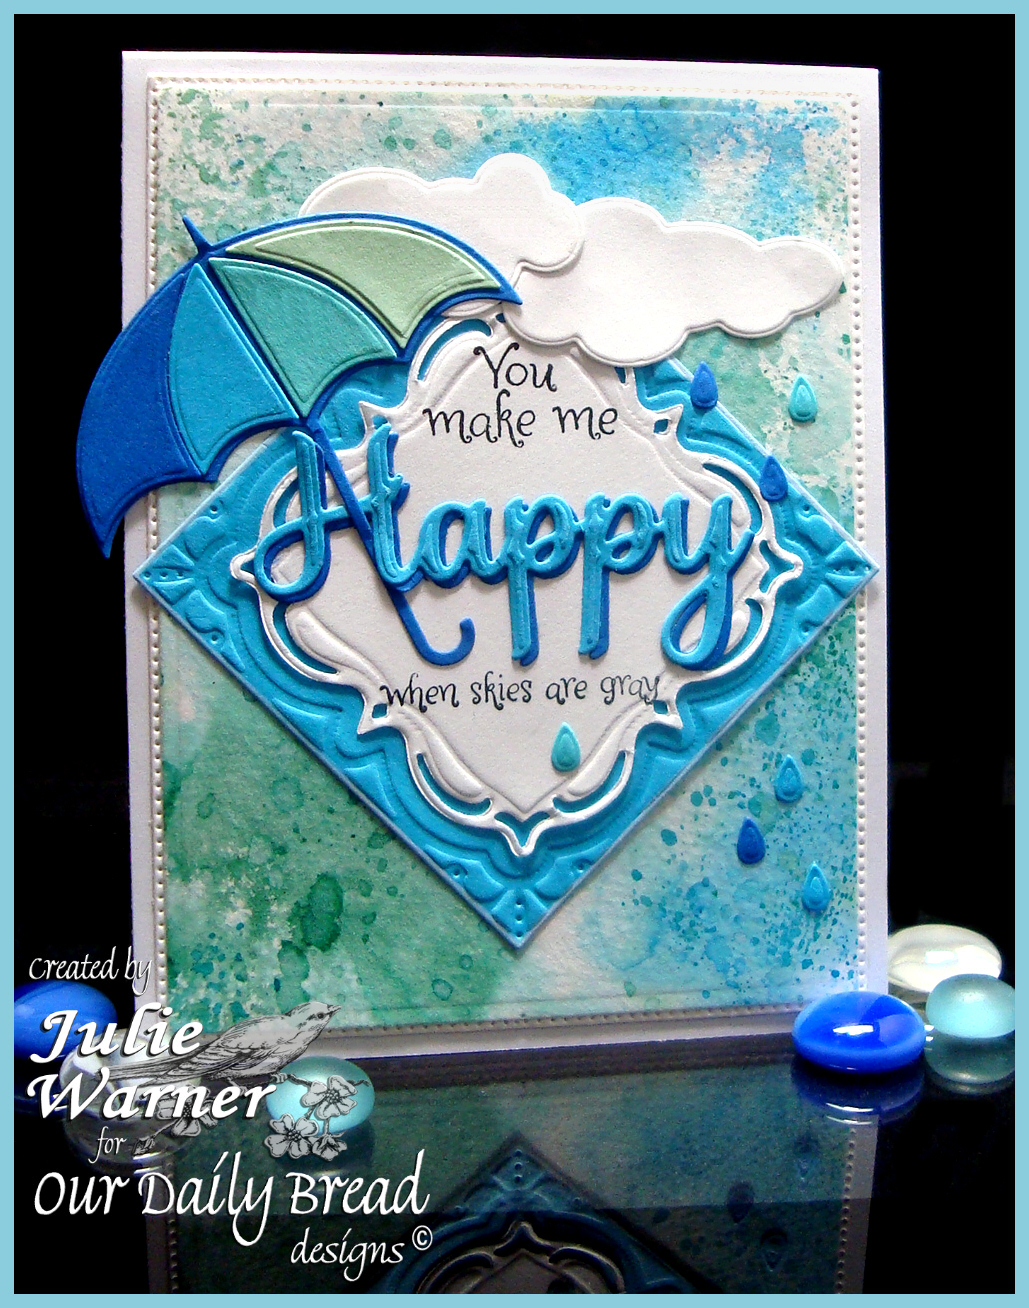 Stamps - Our Daily Bread Designs April Showers, ODBD Custom Umbrellas Die, ODBD Custom Cloud & Raindrops Dies, ODBD Custom Layered Lacey Squares Dies, ODBD Custom Flourished Star Pattern Die, ODBD Custom Happy Birthday Die